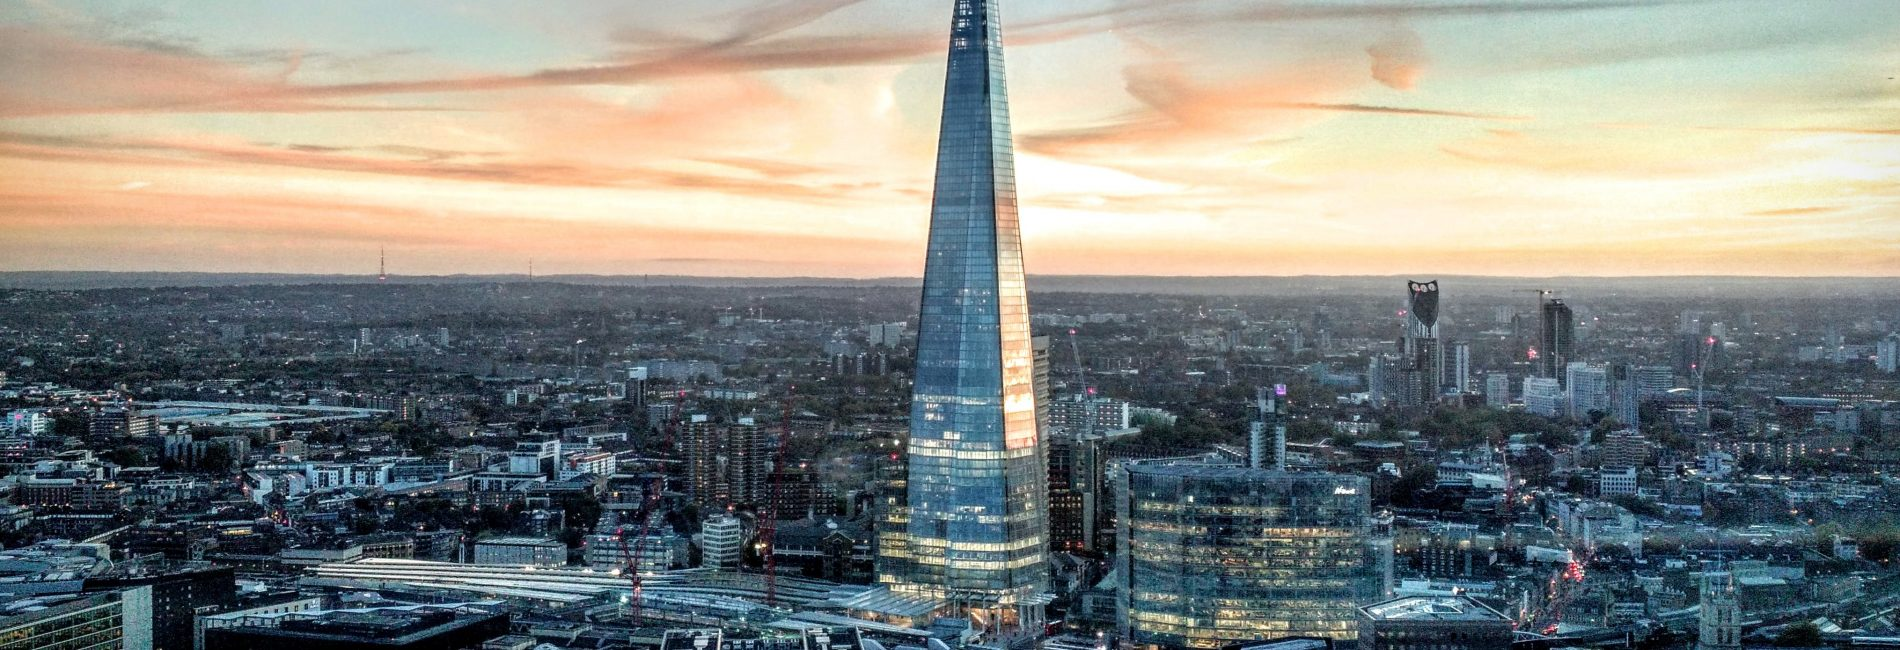 5 Places to visit in London